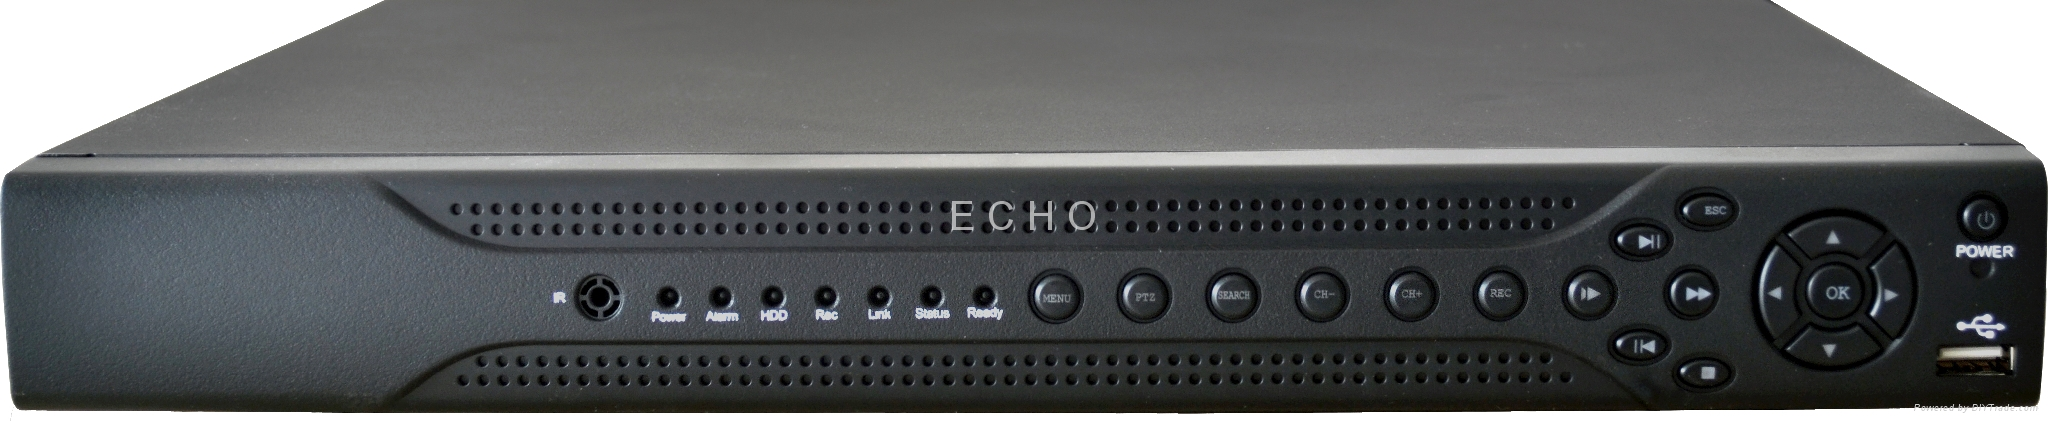 Support 16ch 4M  5M cloud services, P2P,  alarm information push to phone dvr